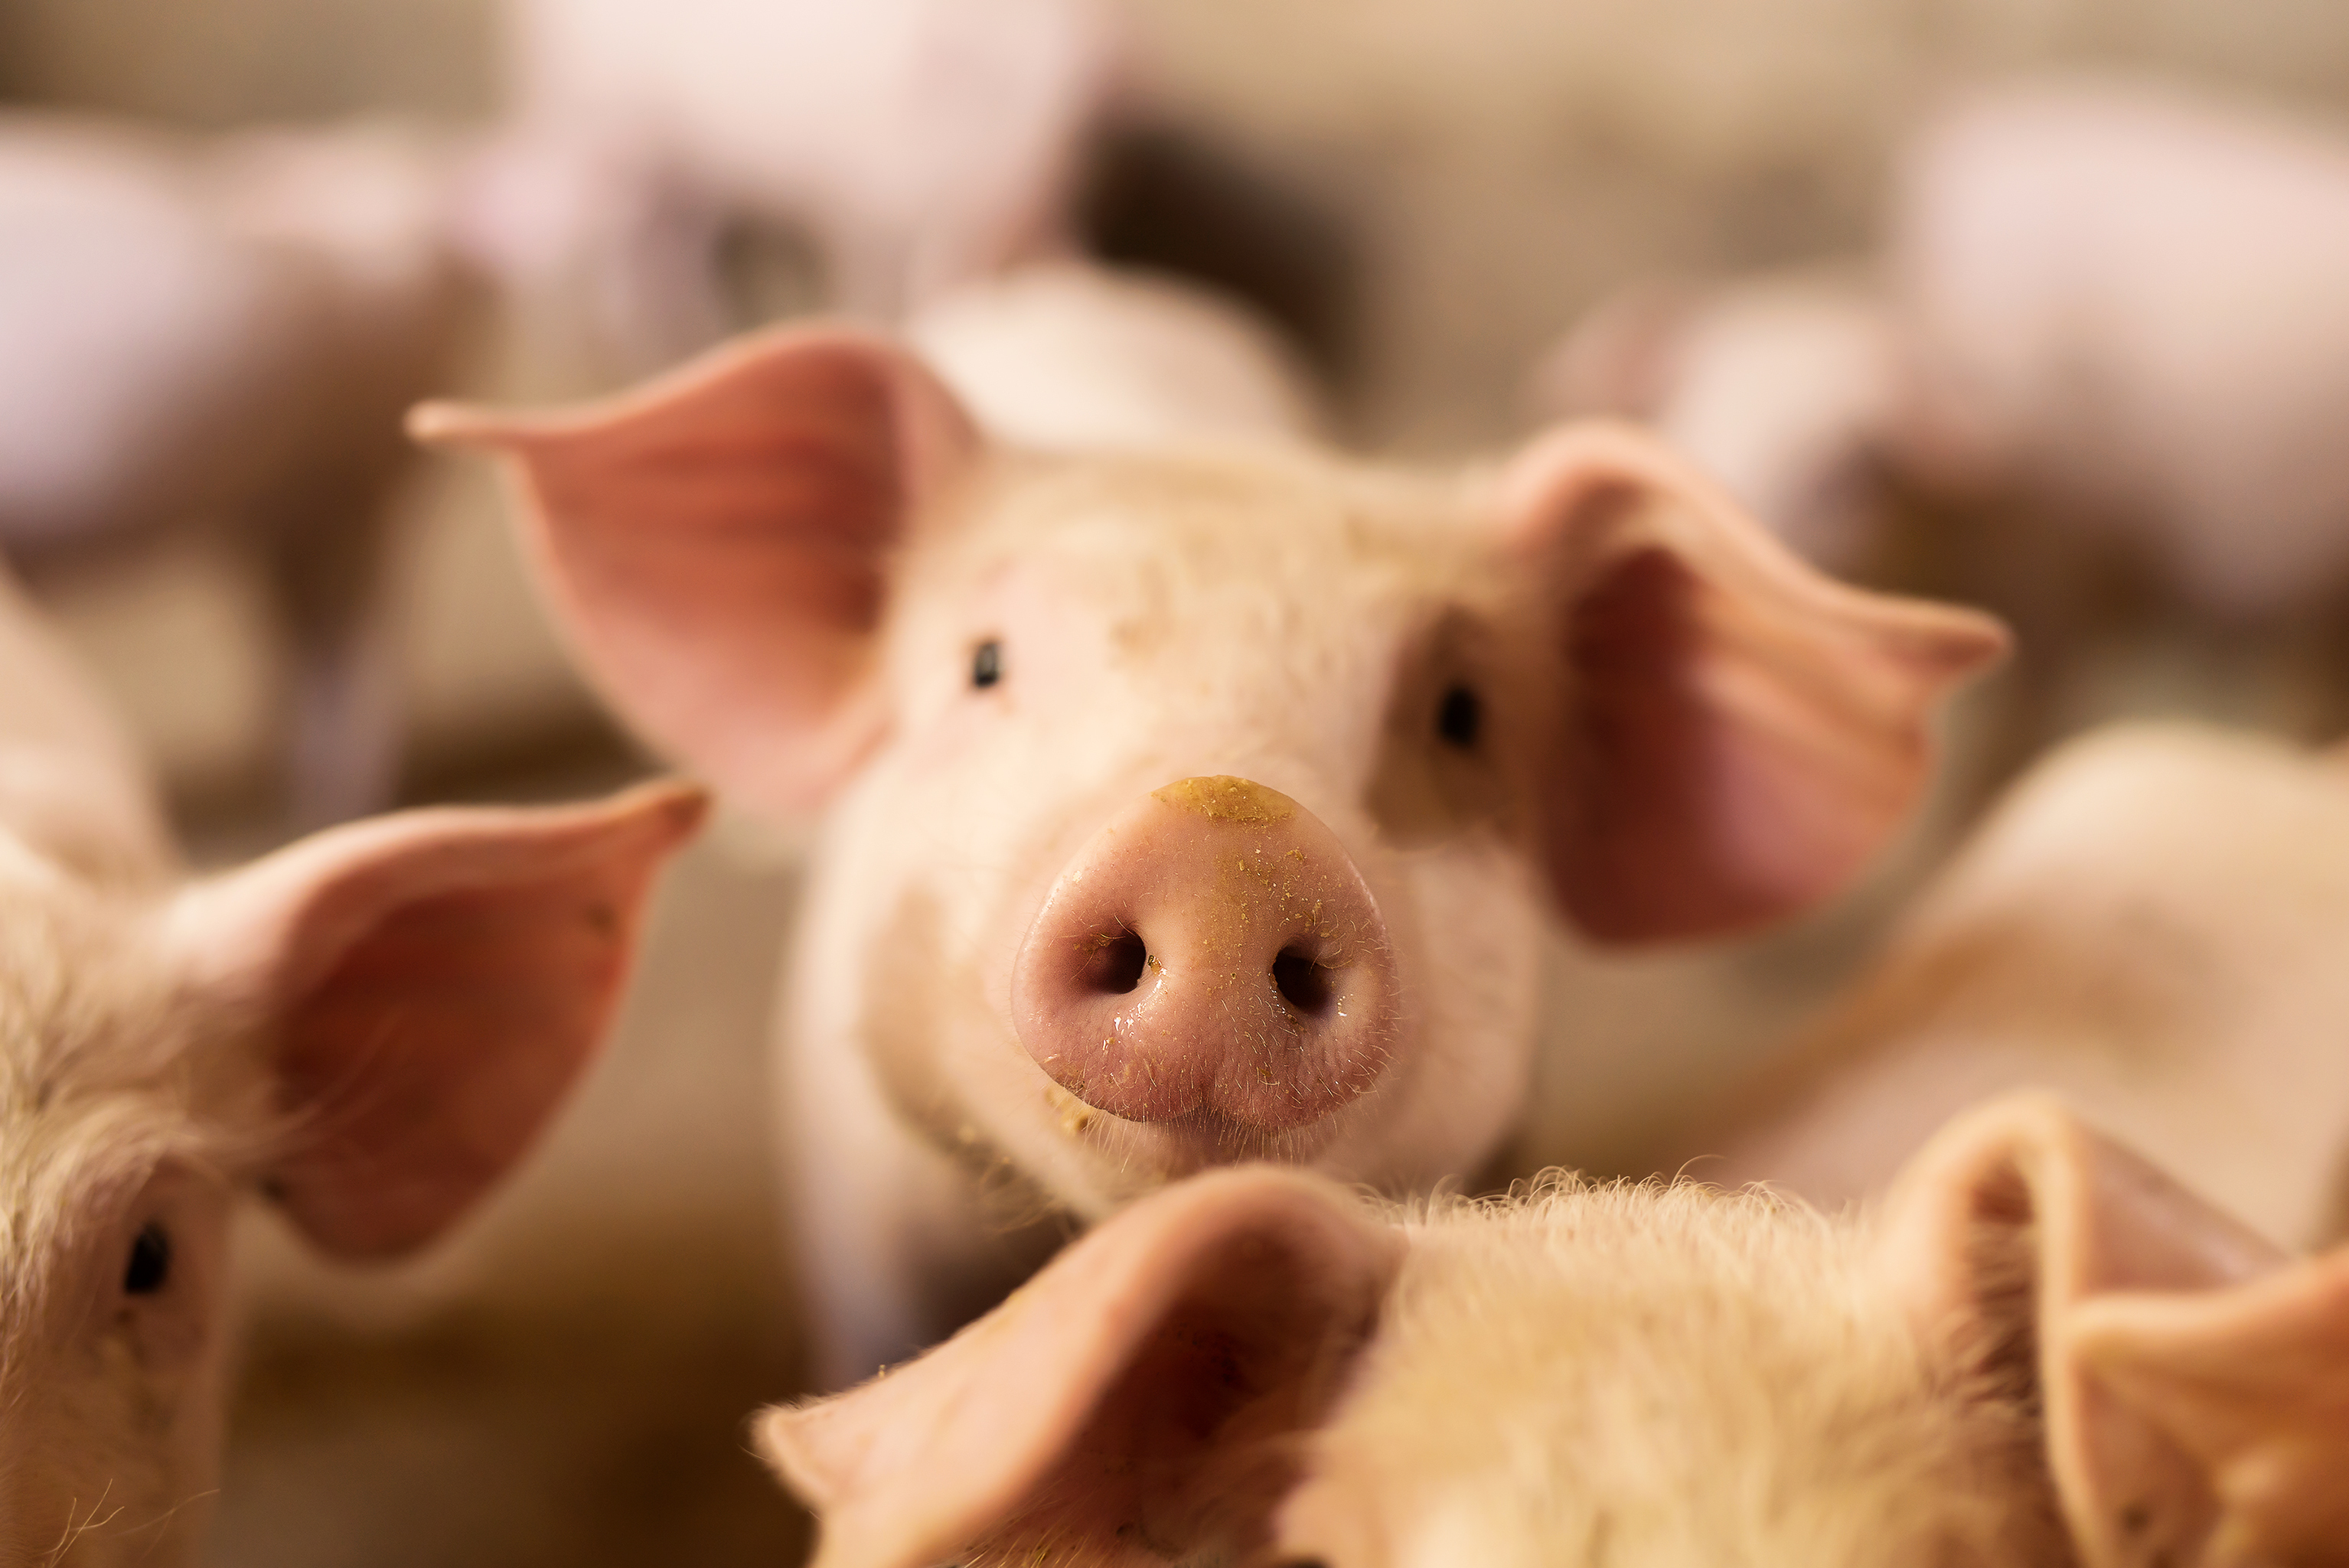 NIH Awards Recombinetics a Research Grant to Develop Swine Model of Alzheimer's